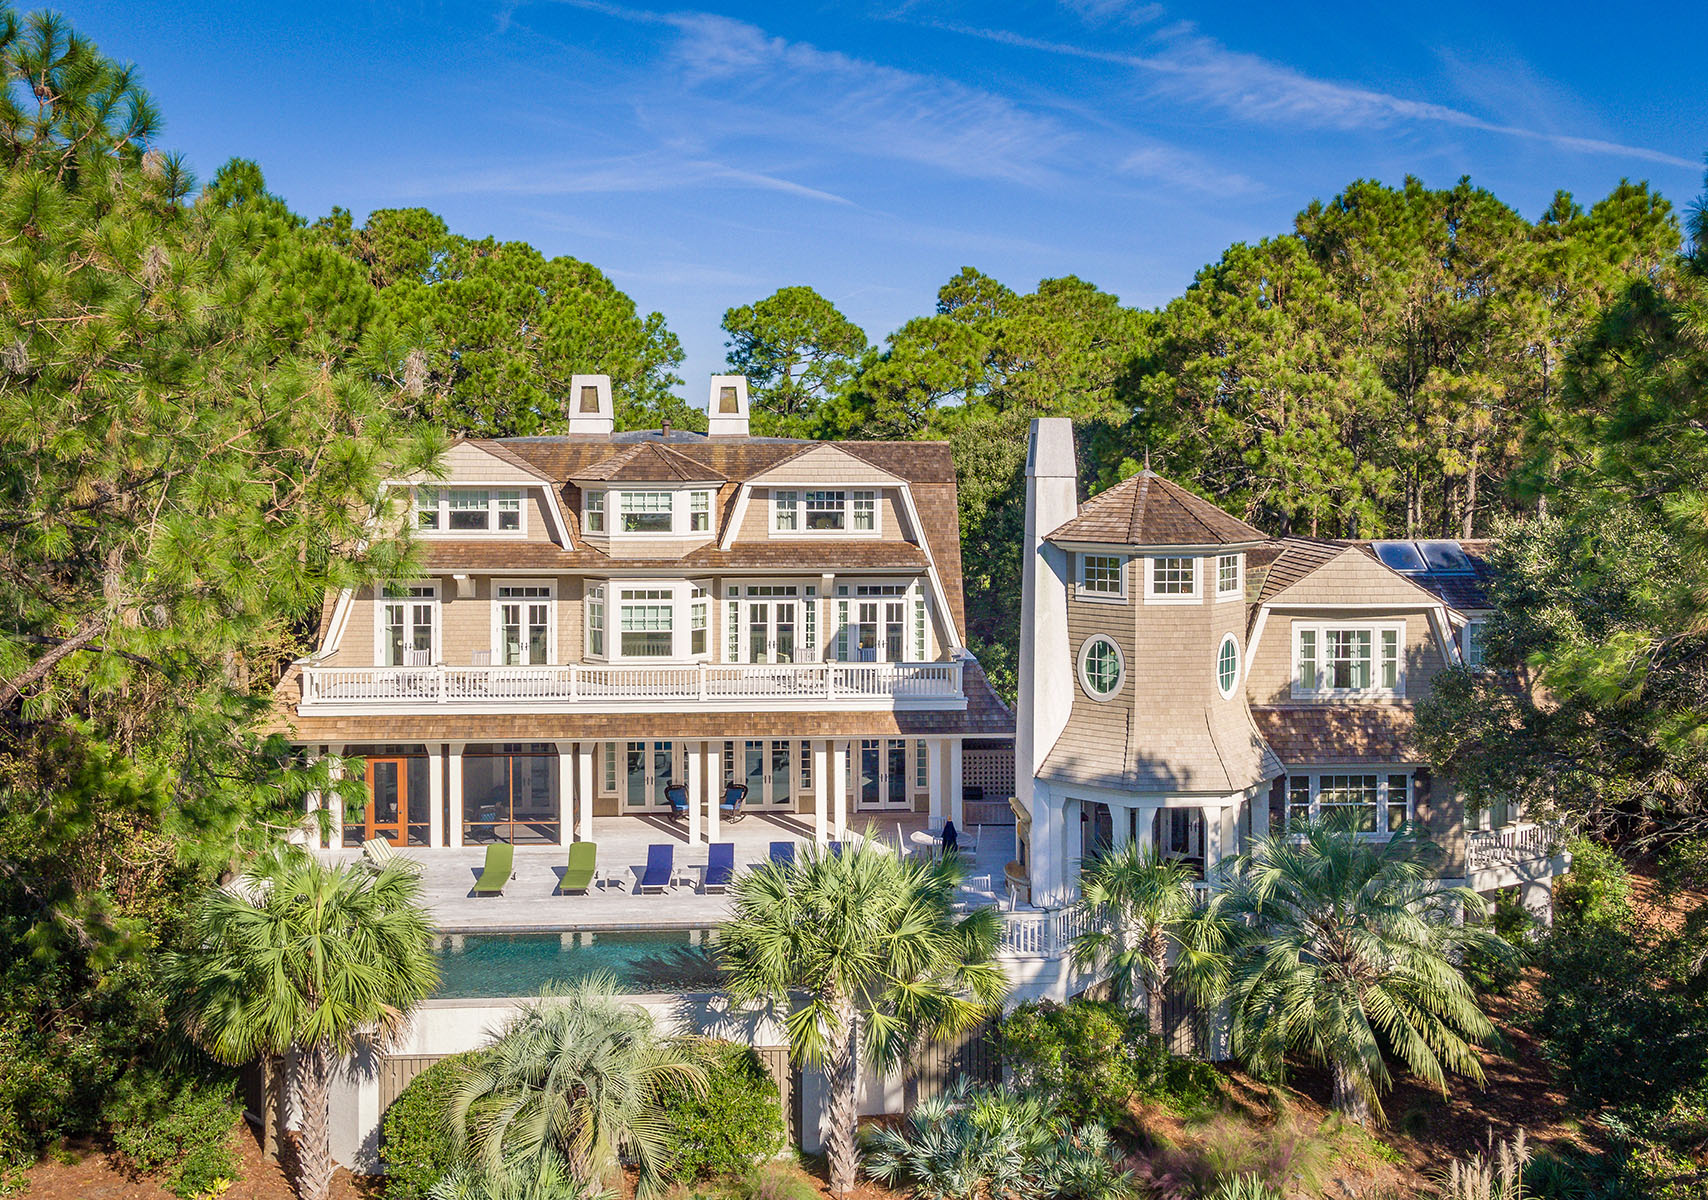 Single Family Home for Sale at 109 Flyway Drive Kiawah Island, South Carolina 29455 United States